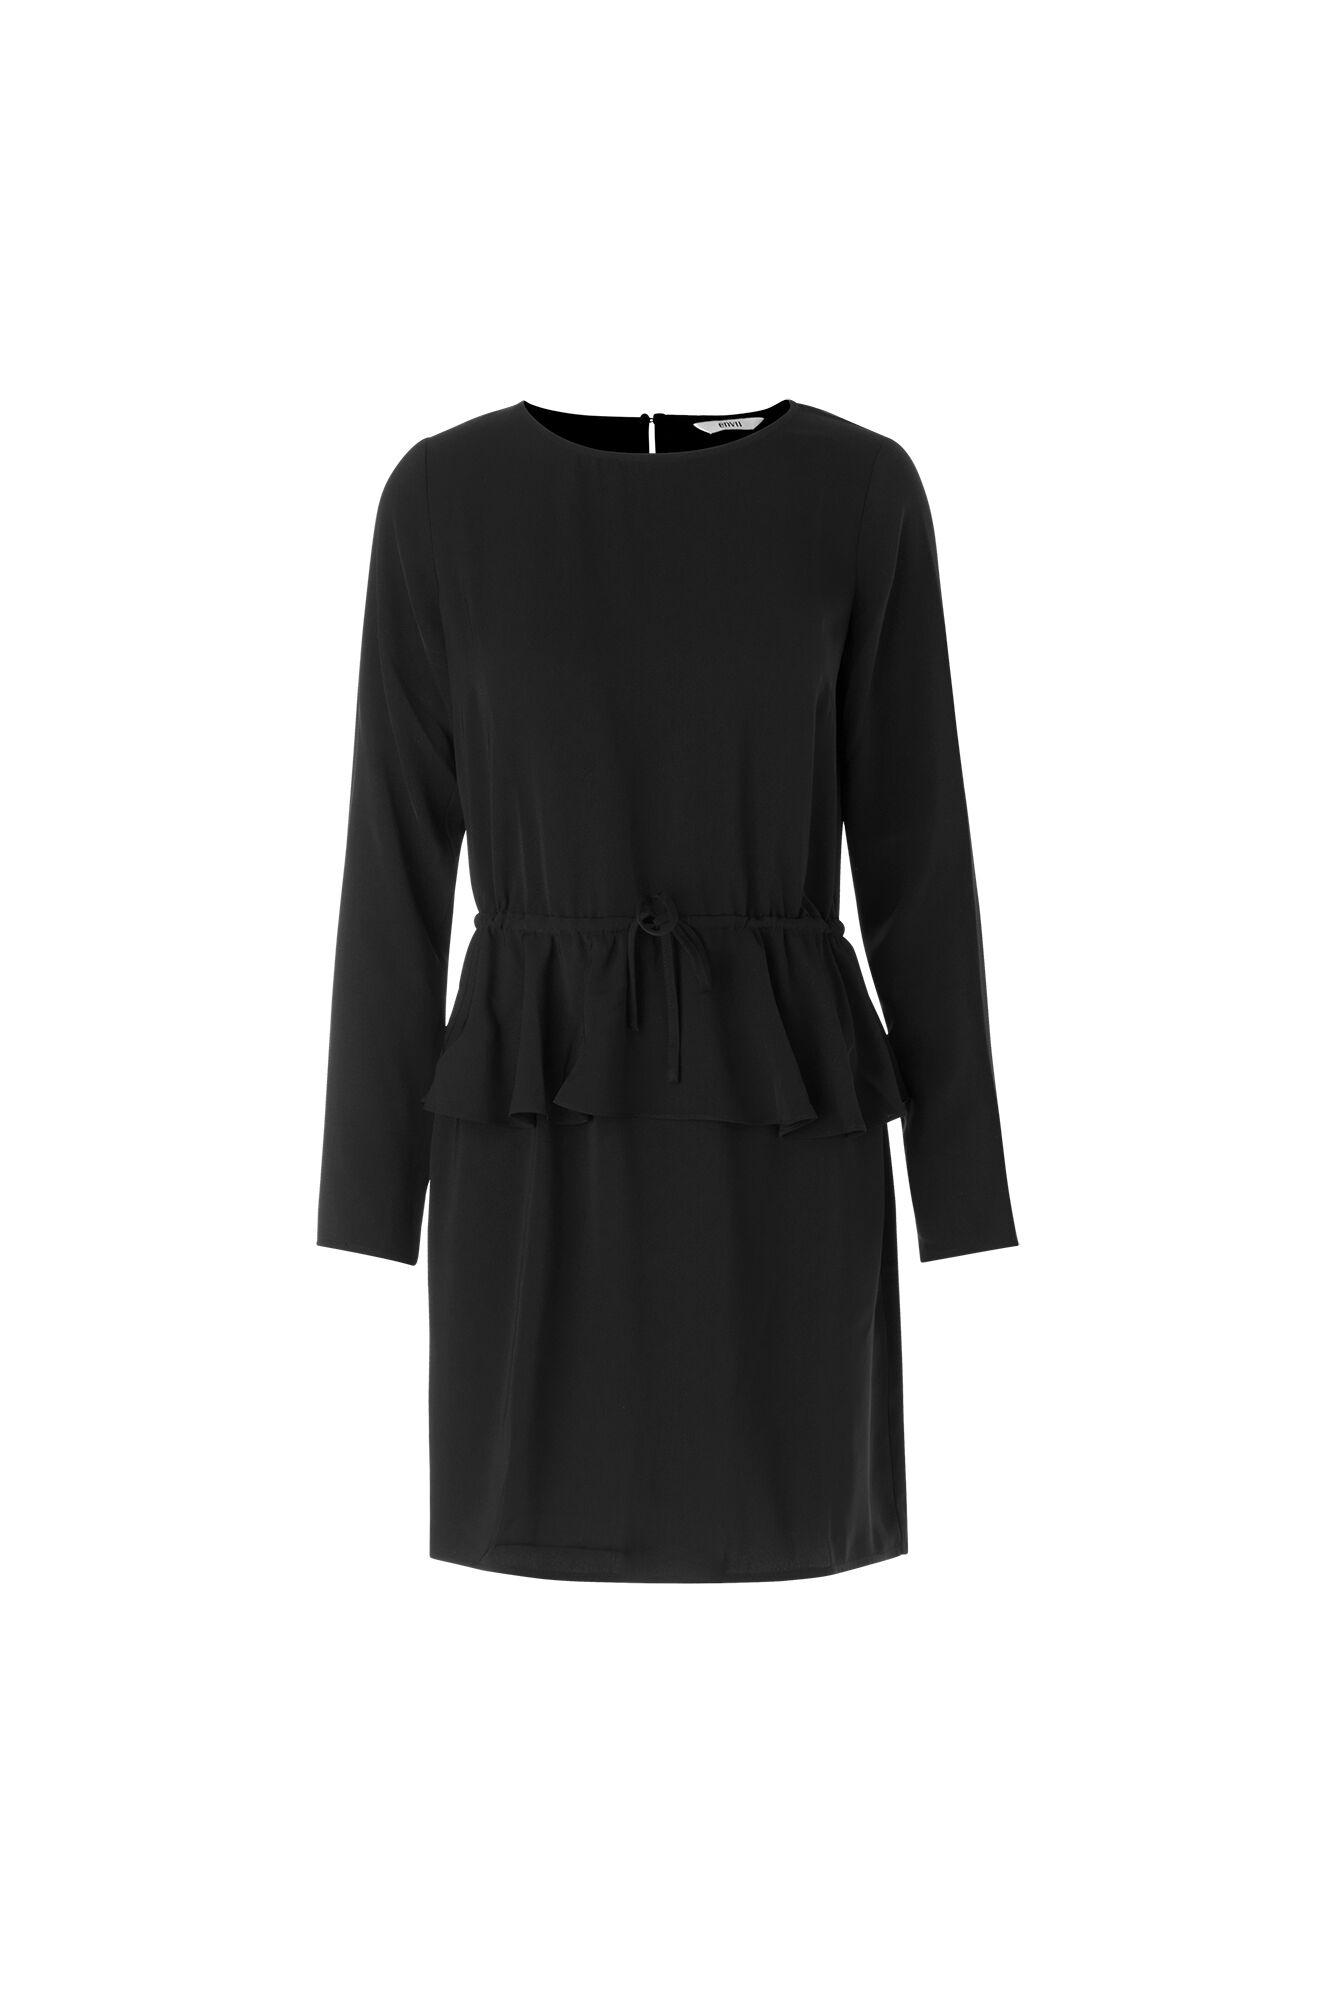 ENALPS LS DRESS 6392, BLACK